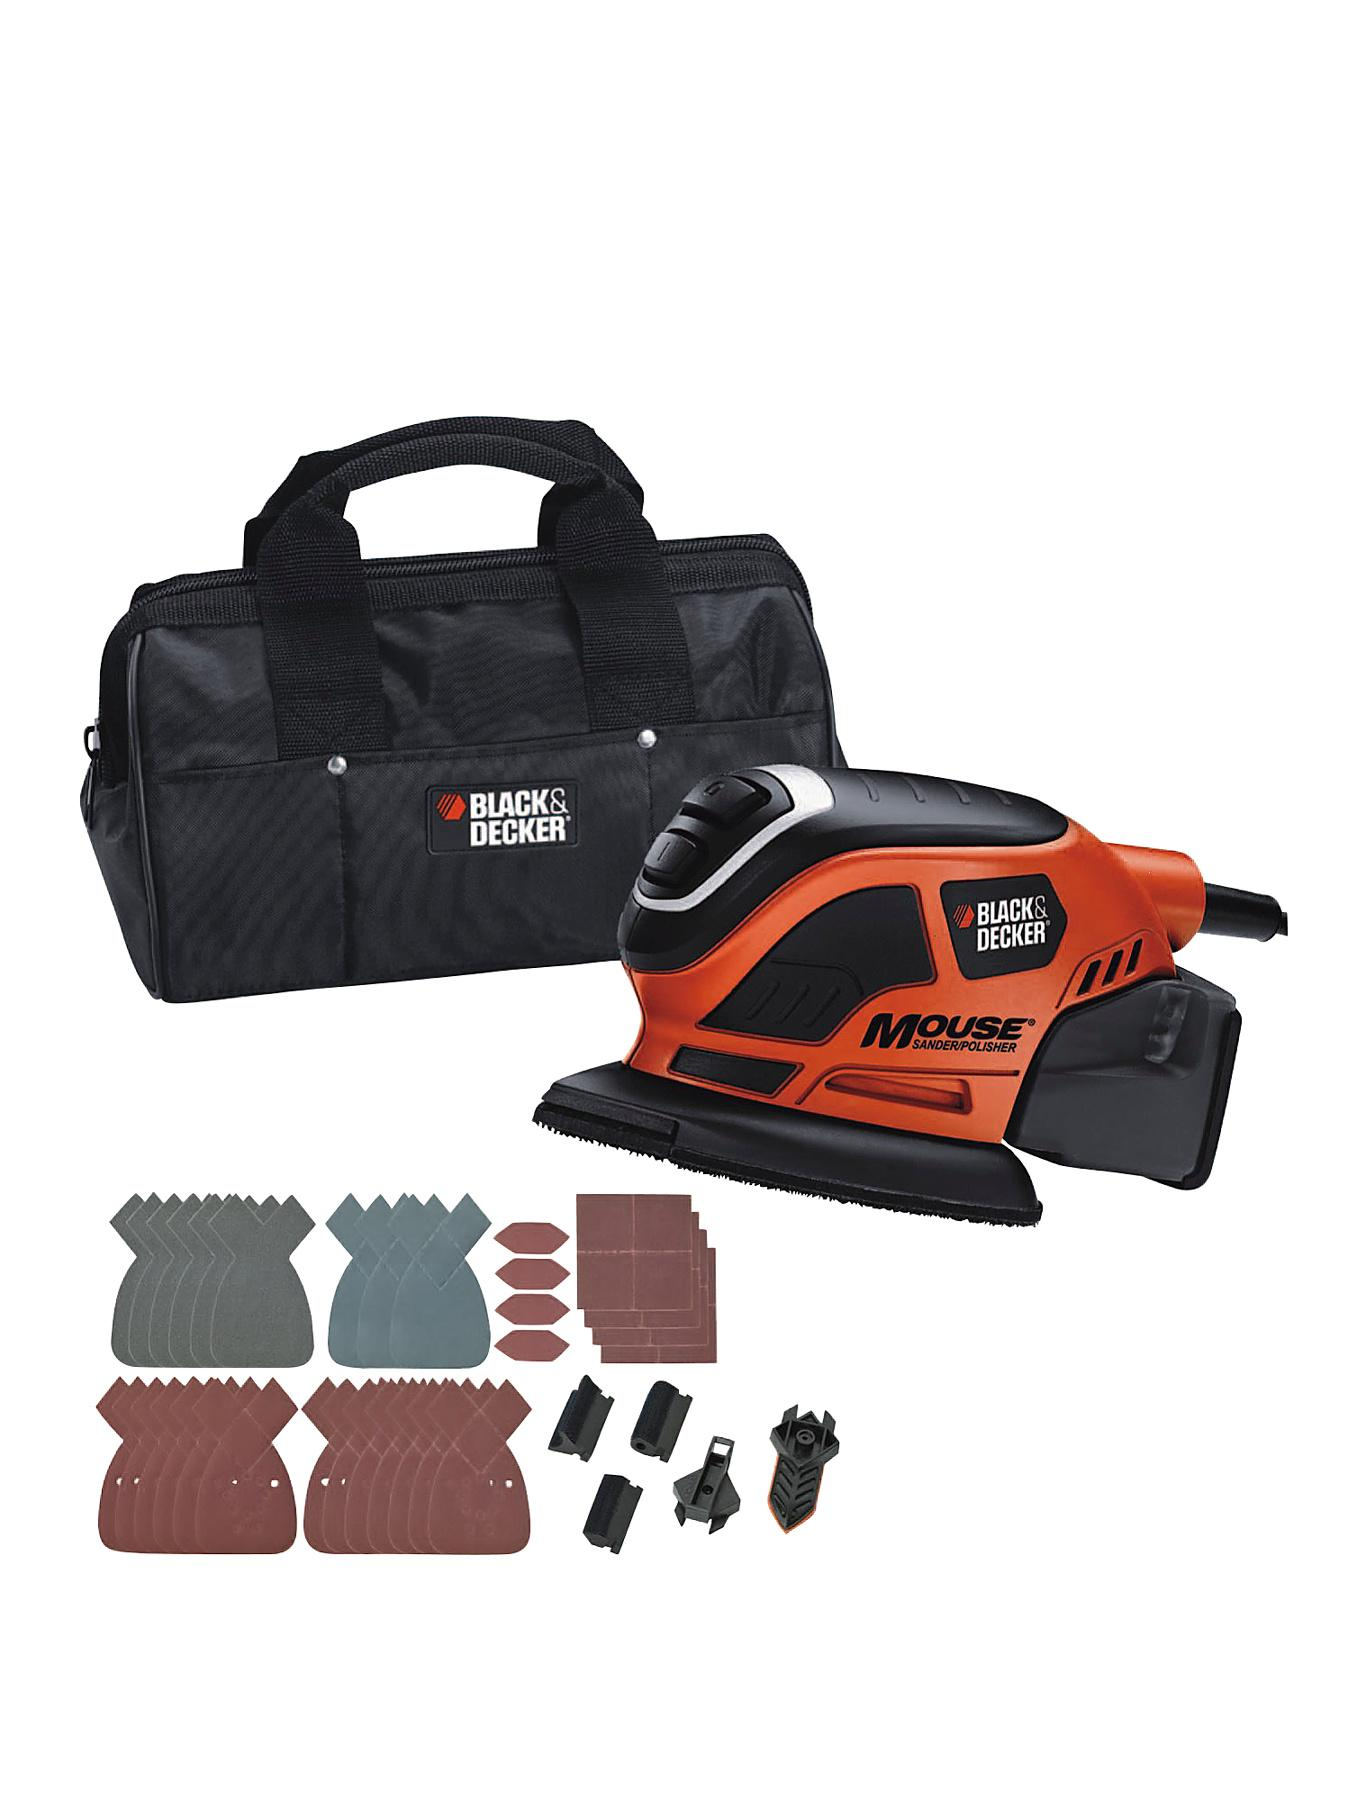 Black & Decker Mouse Detail Sander plus 22 Accessories